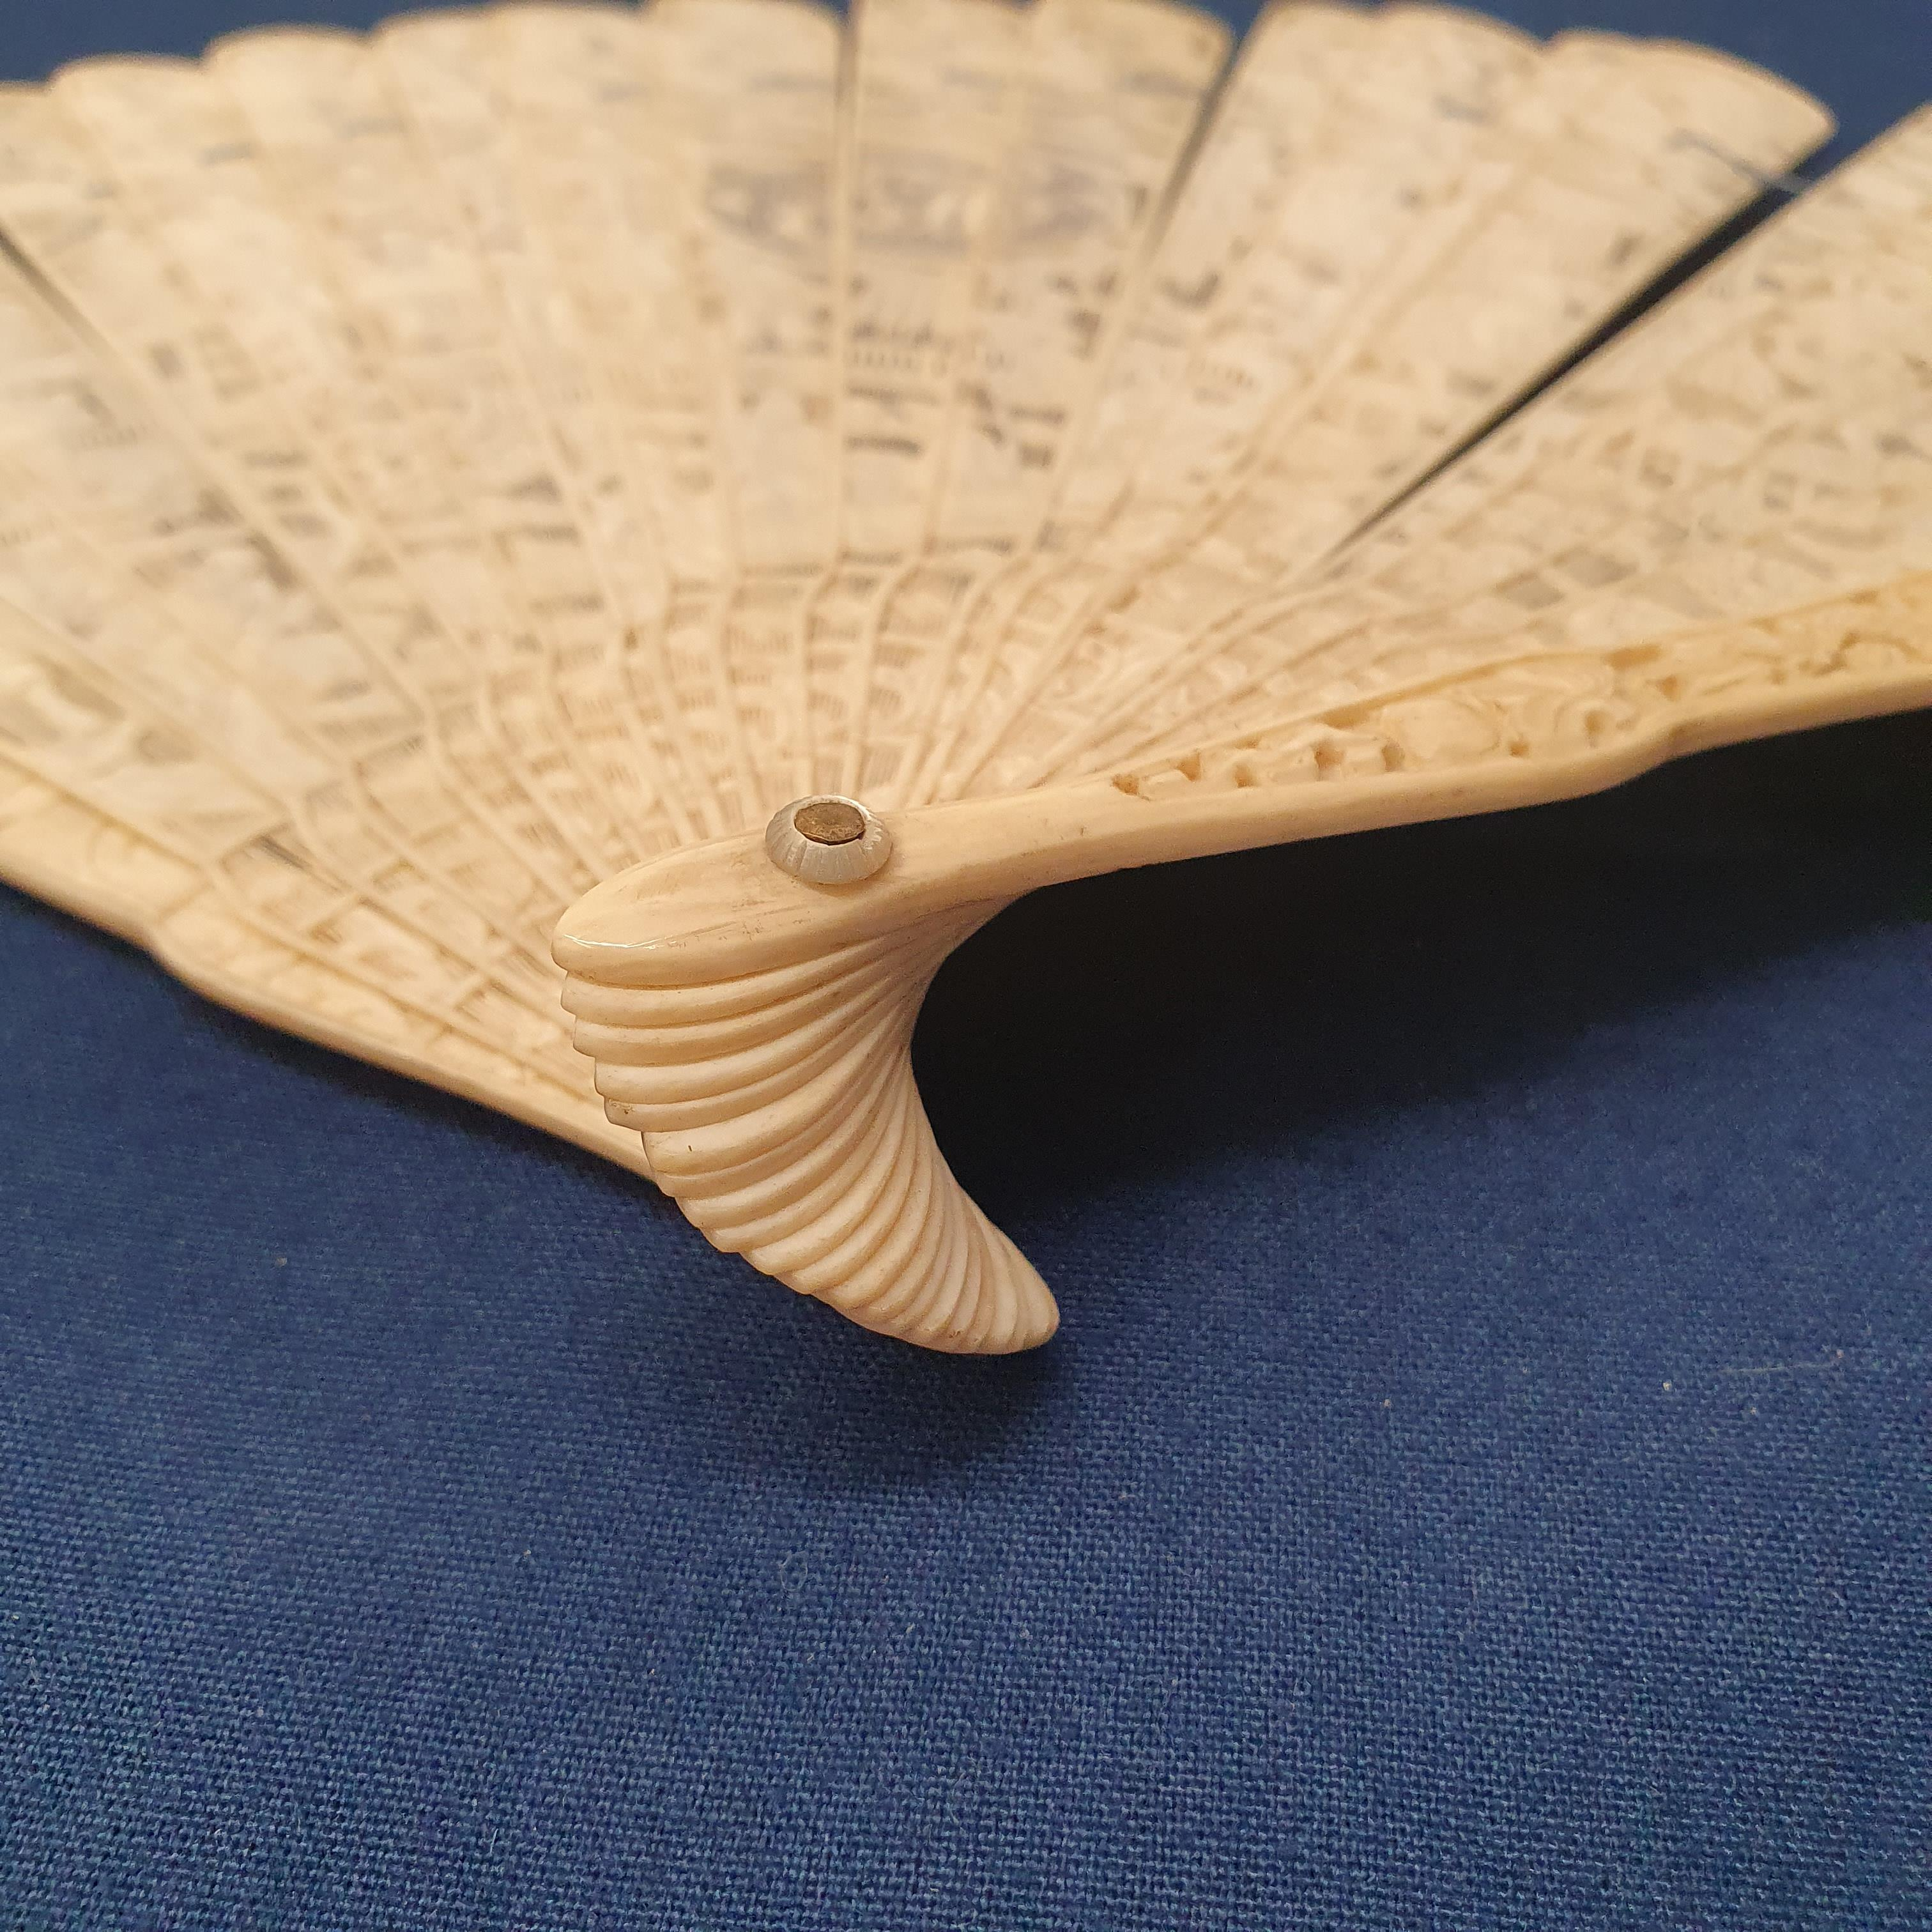 A Chinese ivory brisee fan, two others, and a similar fan with silk embroidered decoration, in a - Image 29 of 47